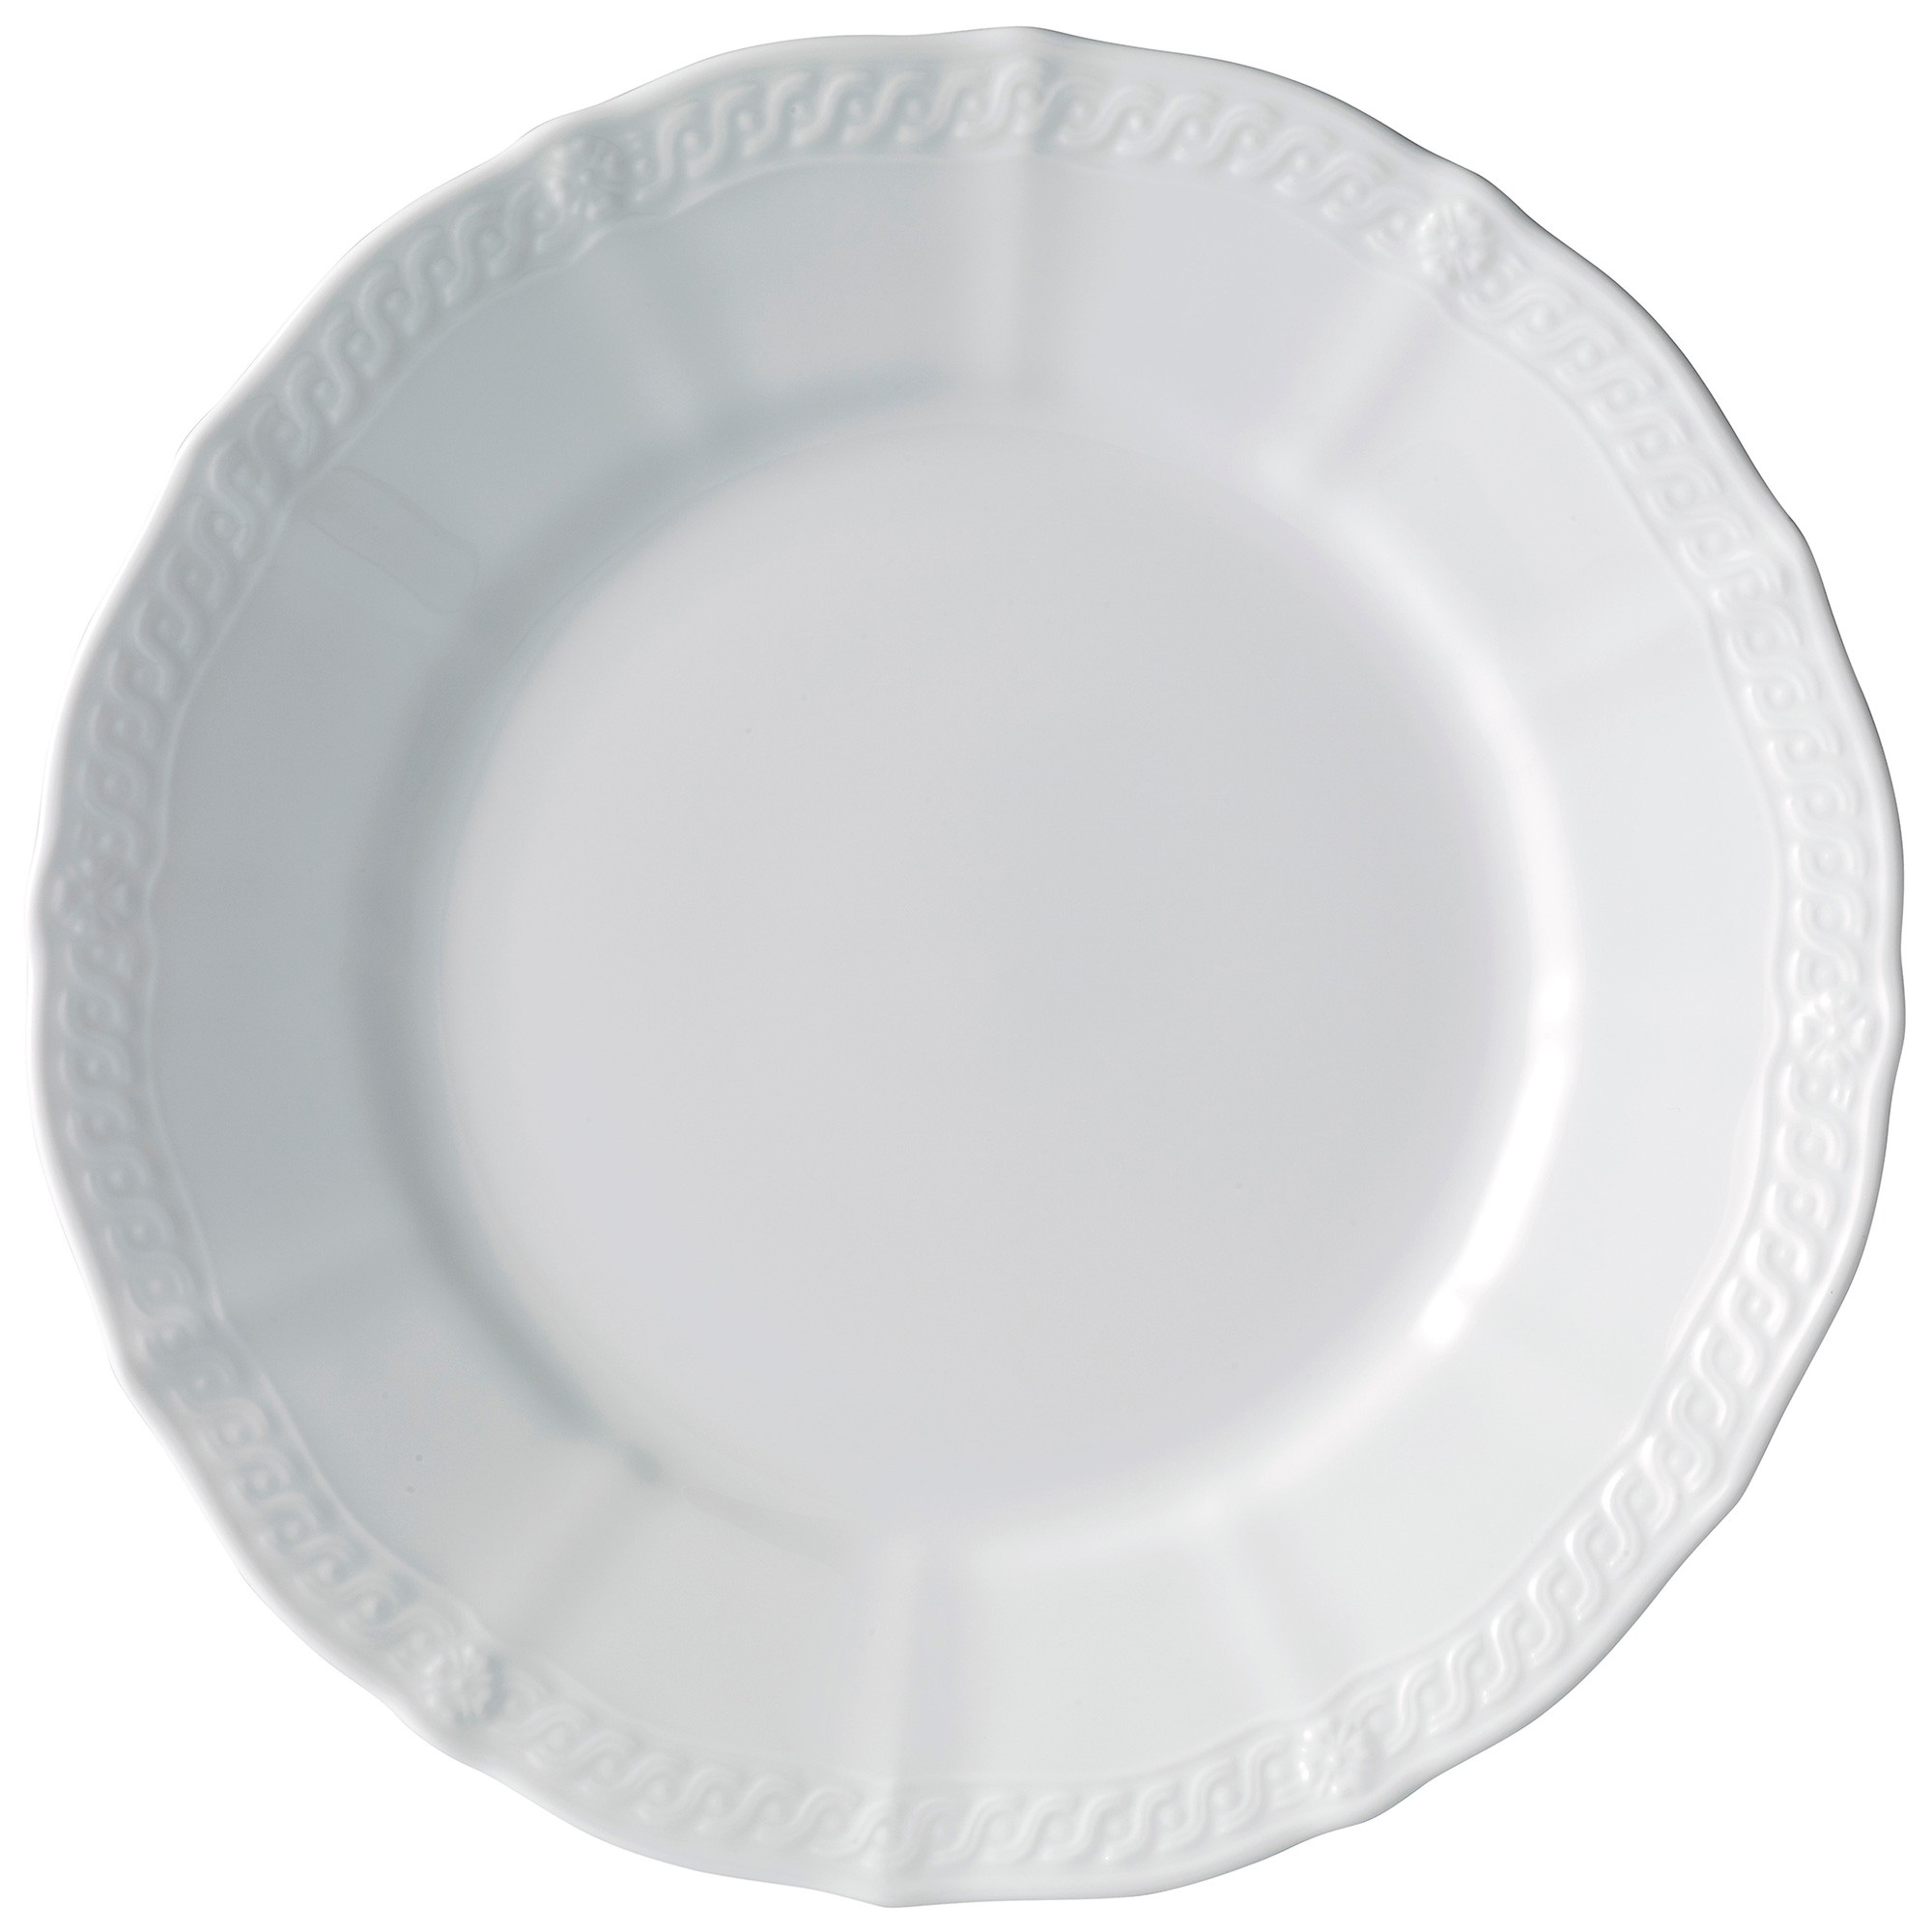 Noritake Cher Blanc Fine China Dinner Plate, Set of 4